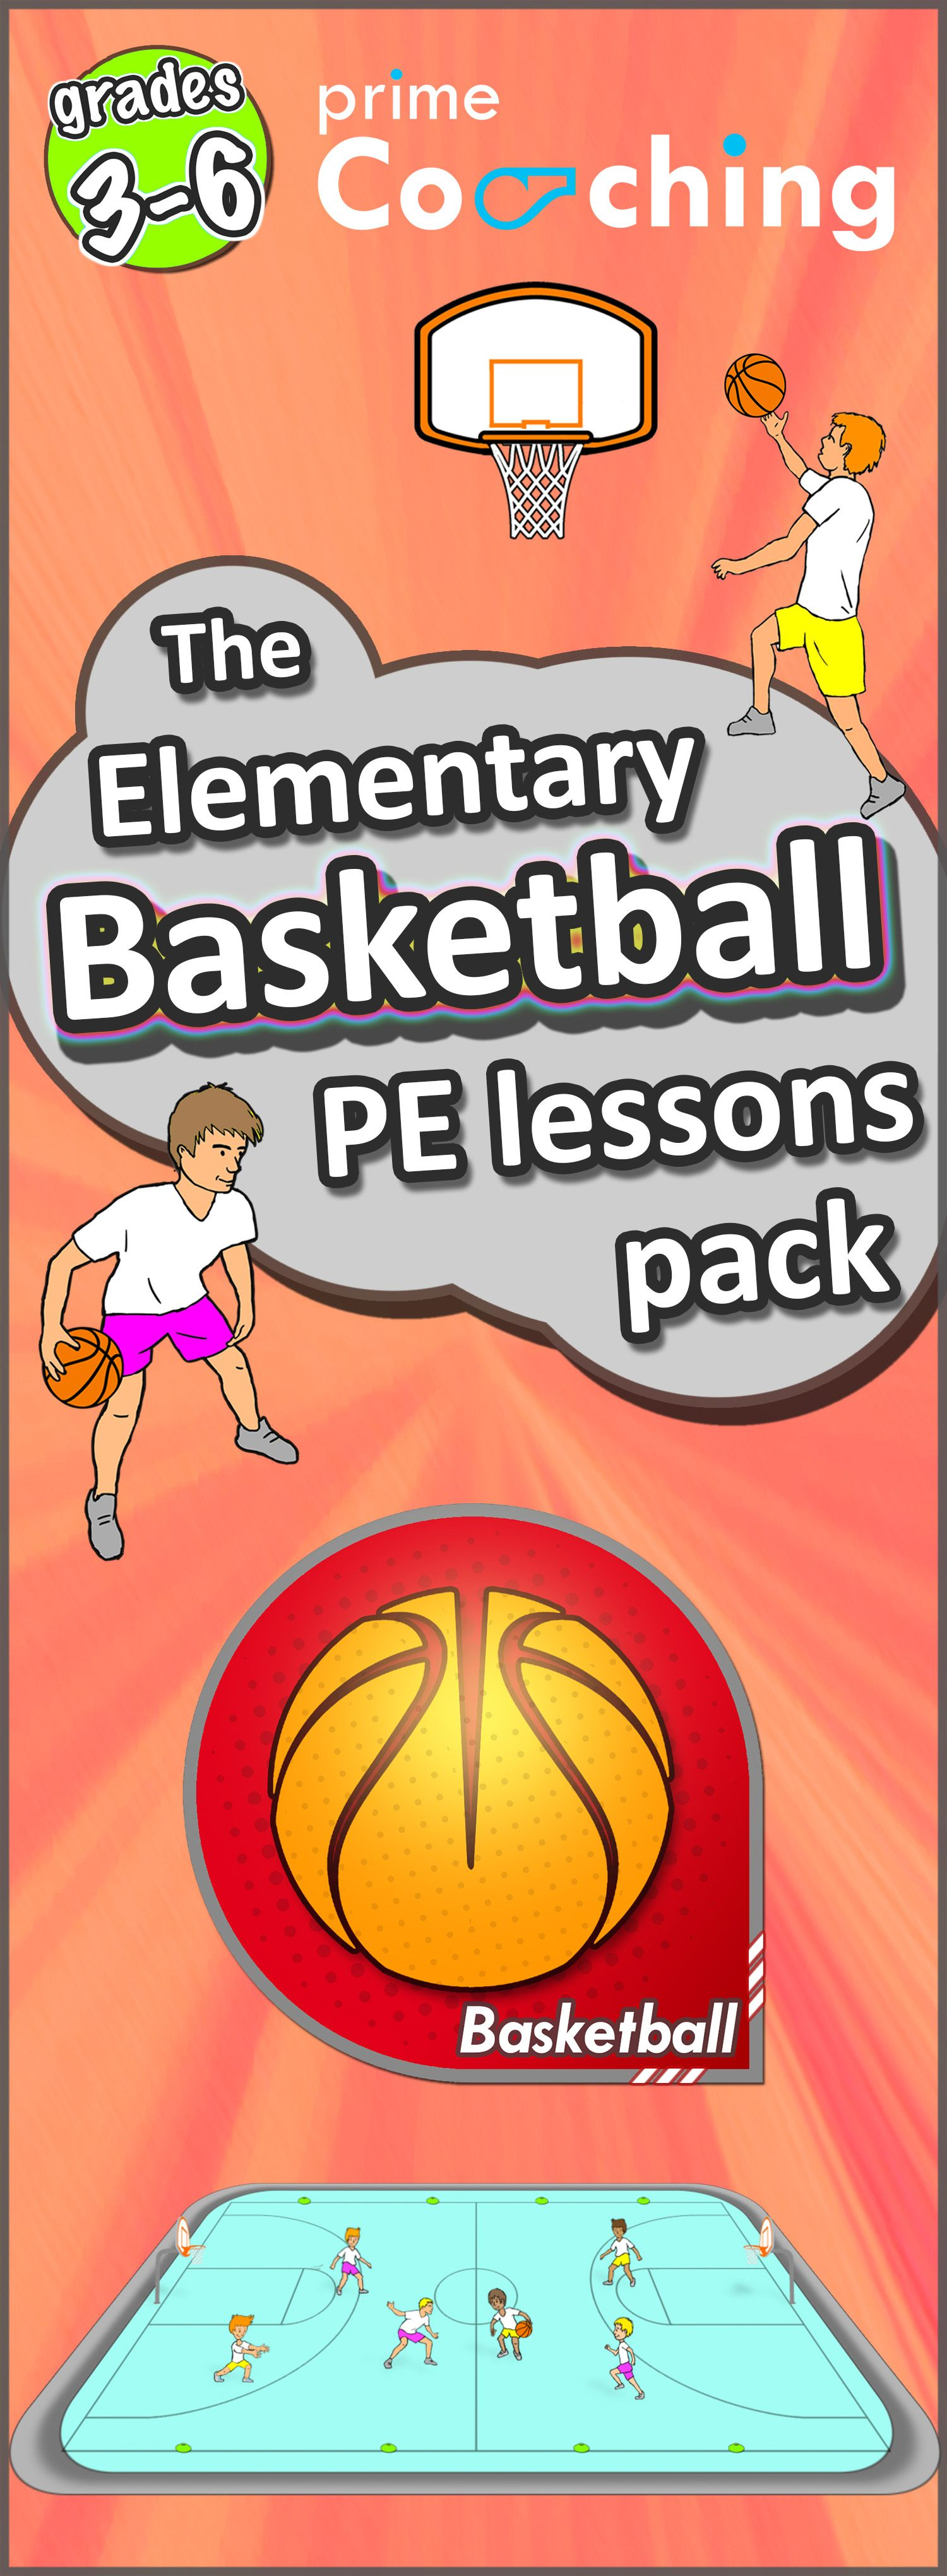 Teaching Basketball We Ve Got The Best Lessons Games Skill And Drills To Get Your Kids At School Develop Pe Lessons Elementary Health And Physical Education